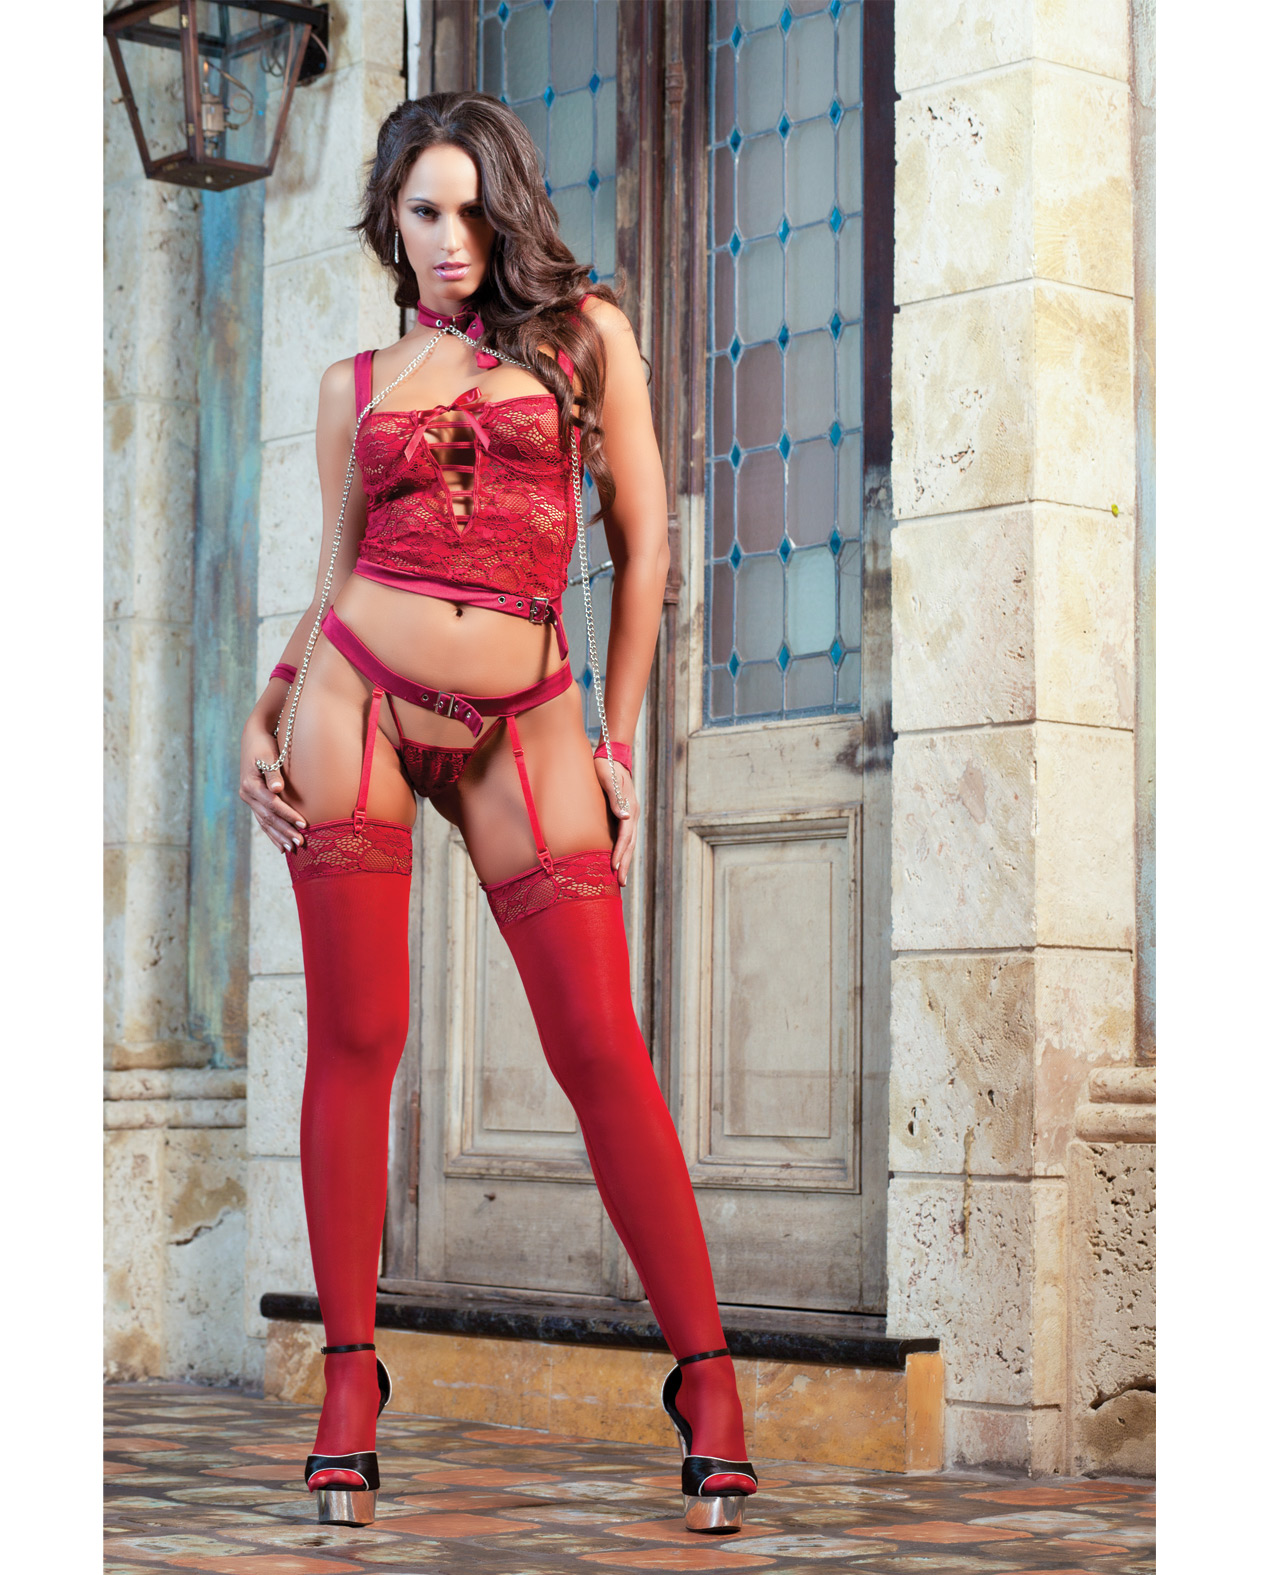 Women's Secret Lover Lingerie Set w/Open Back Garter Panty, Necklace Wrist Chains and Stockings Red - OS ED-GW1420-RD-OS